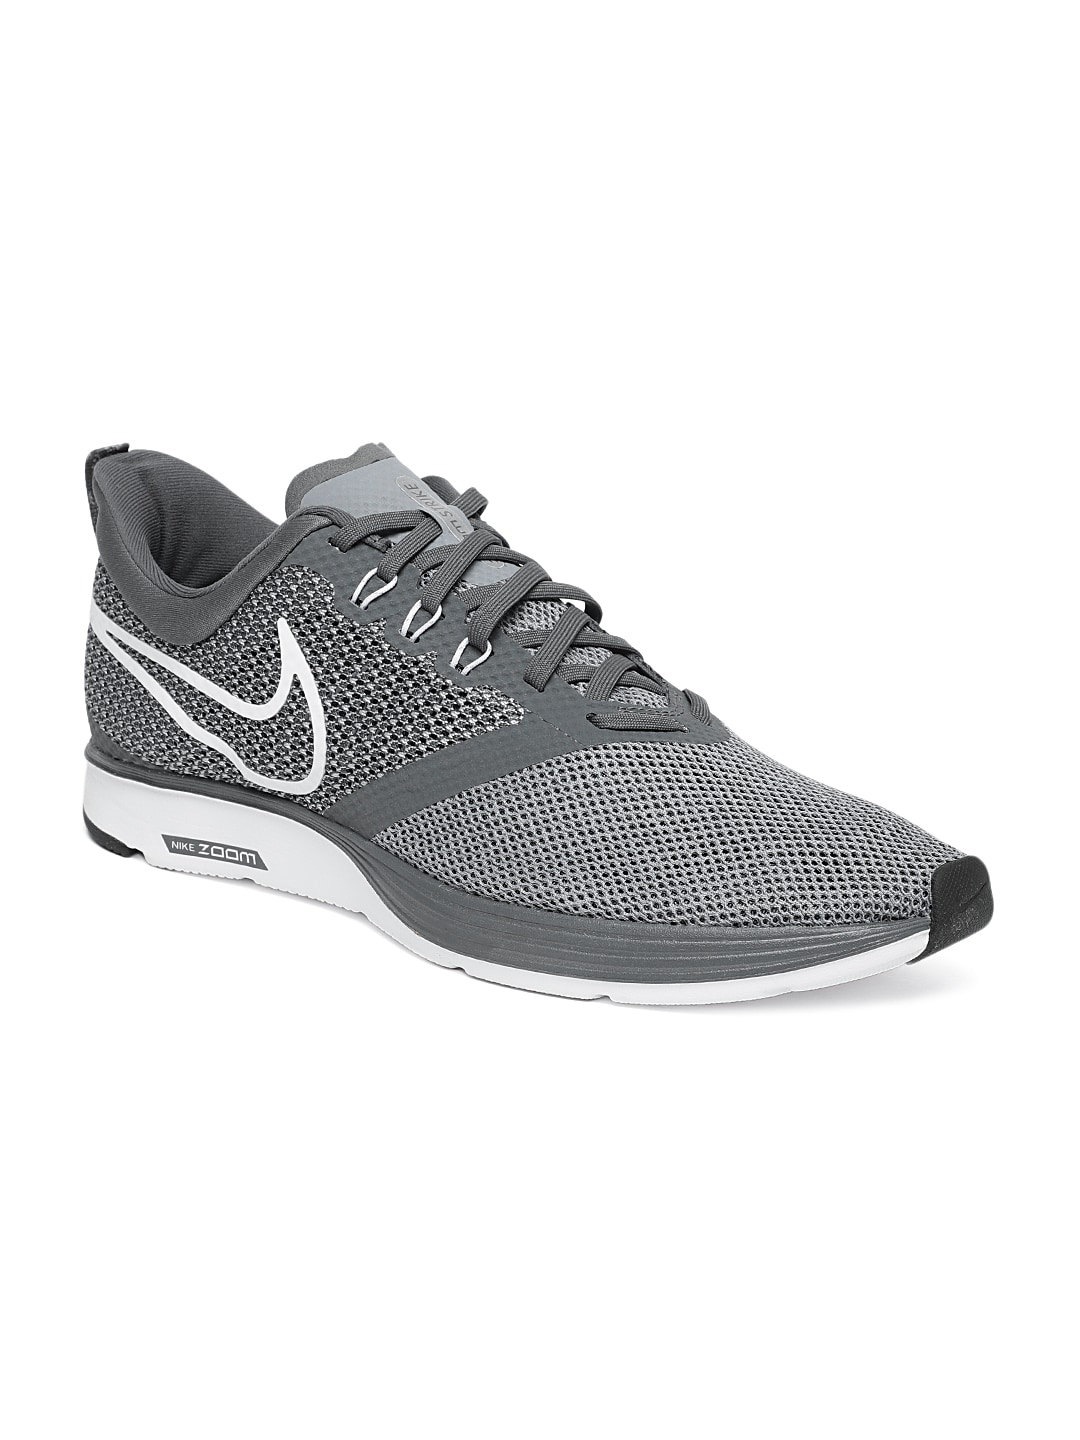 60f685426541 Nike Zoom Shoes - Buy Nike Zoom Shoes online in India